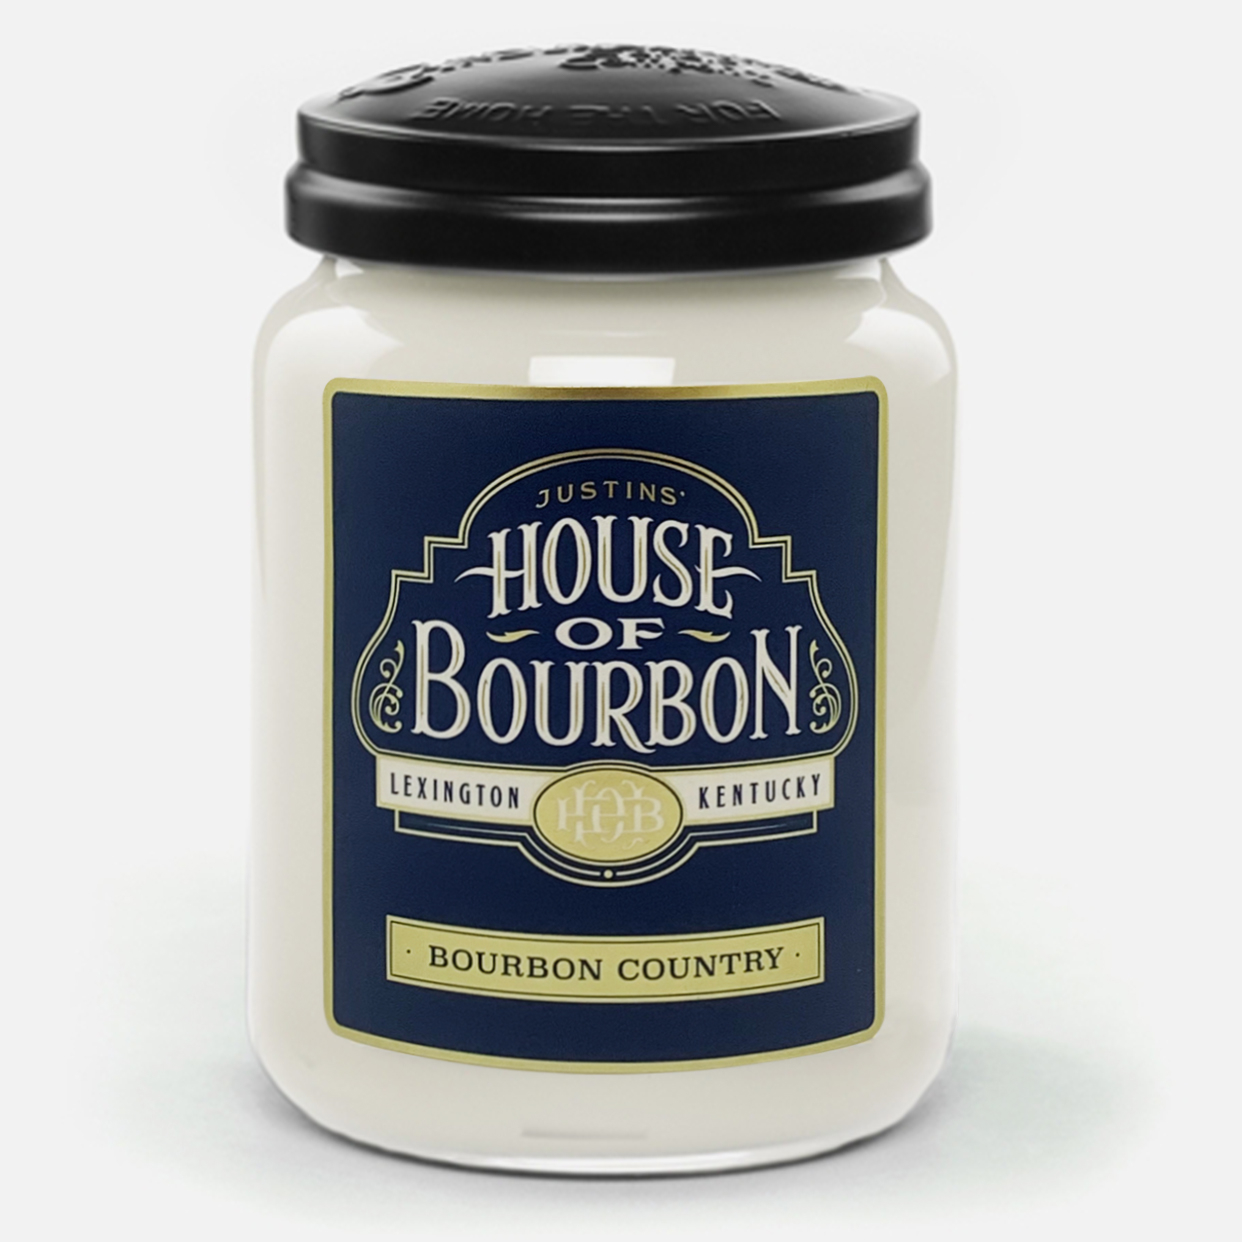 Justins' House of Bourbon Candle